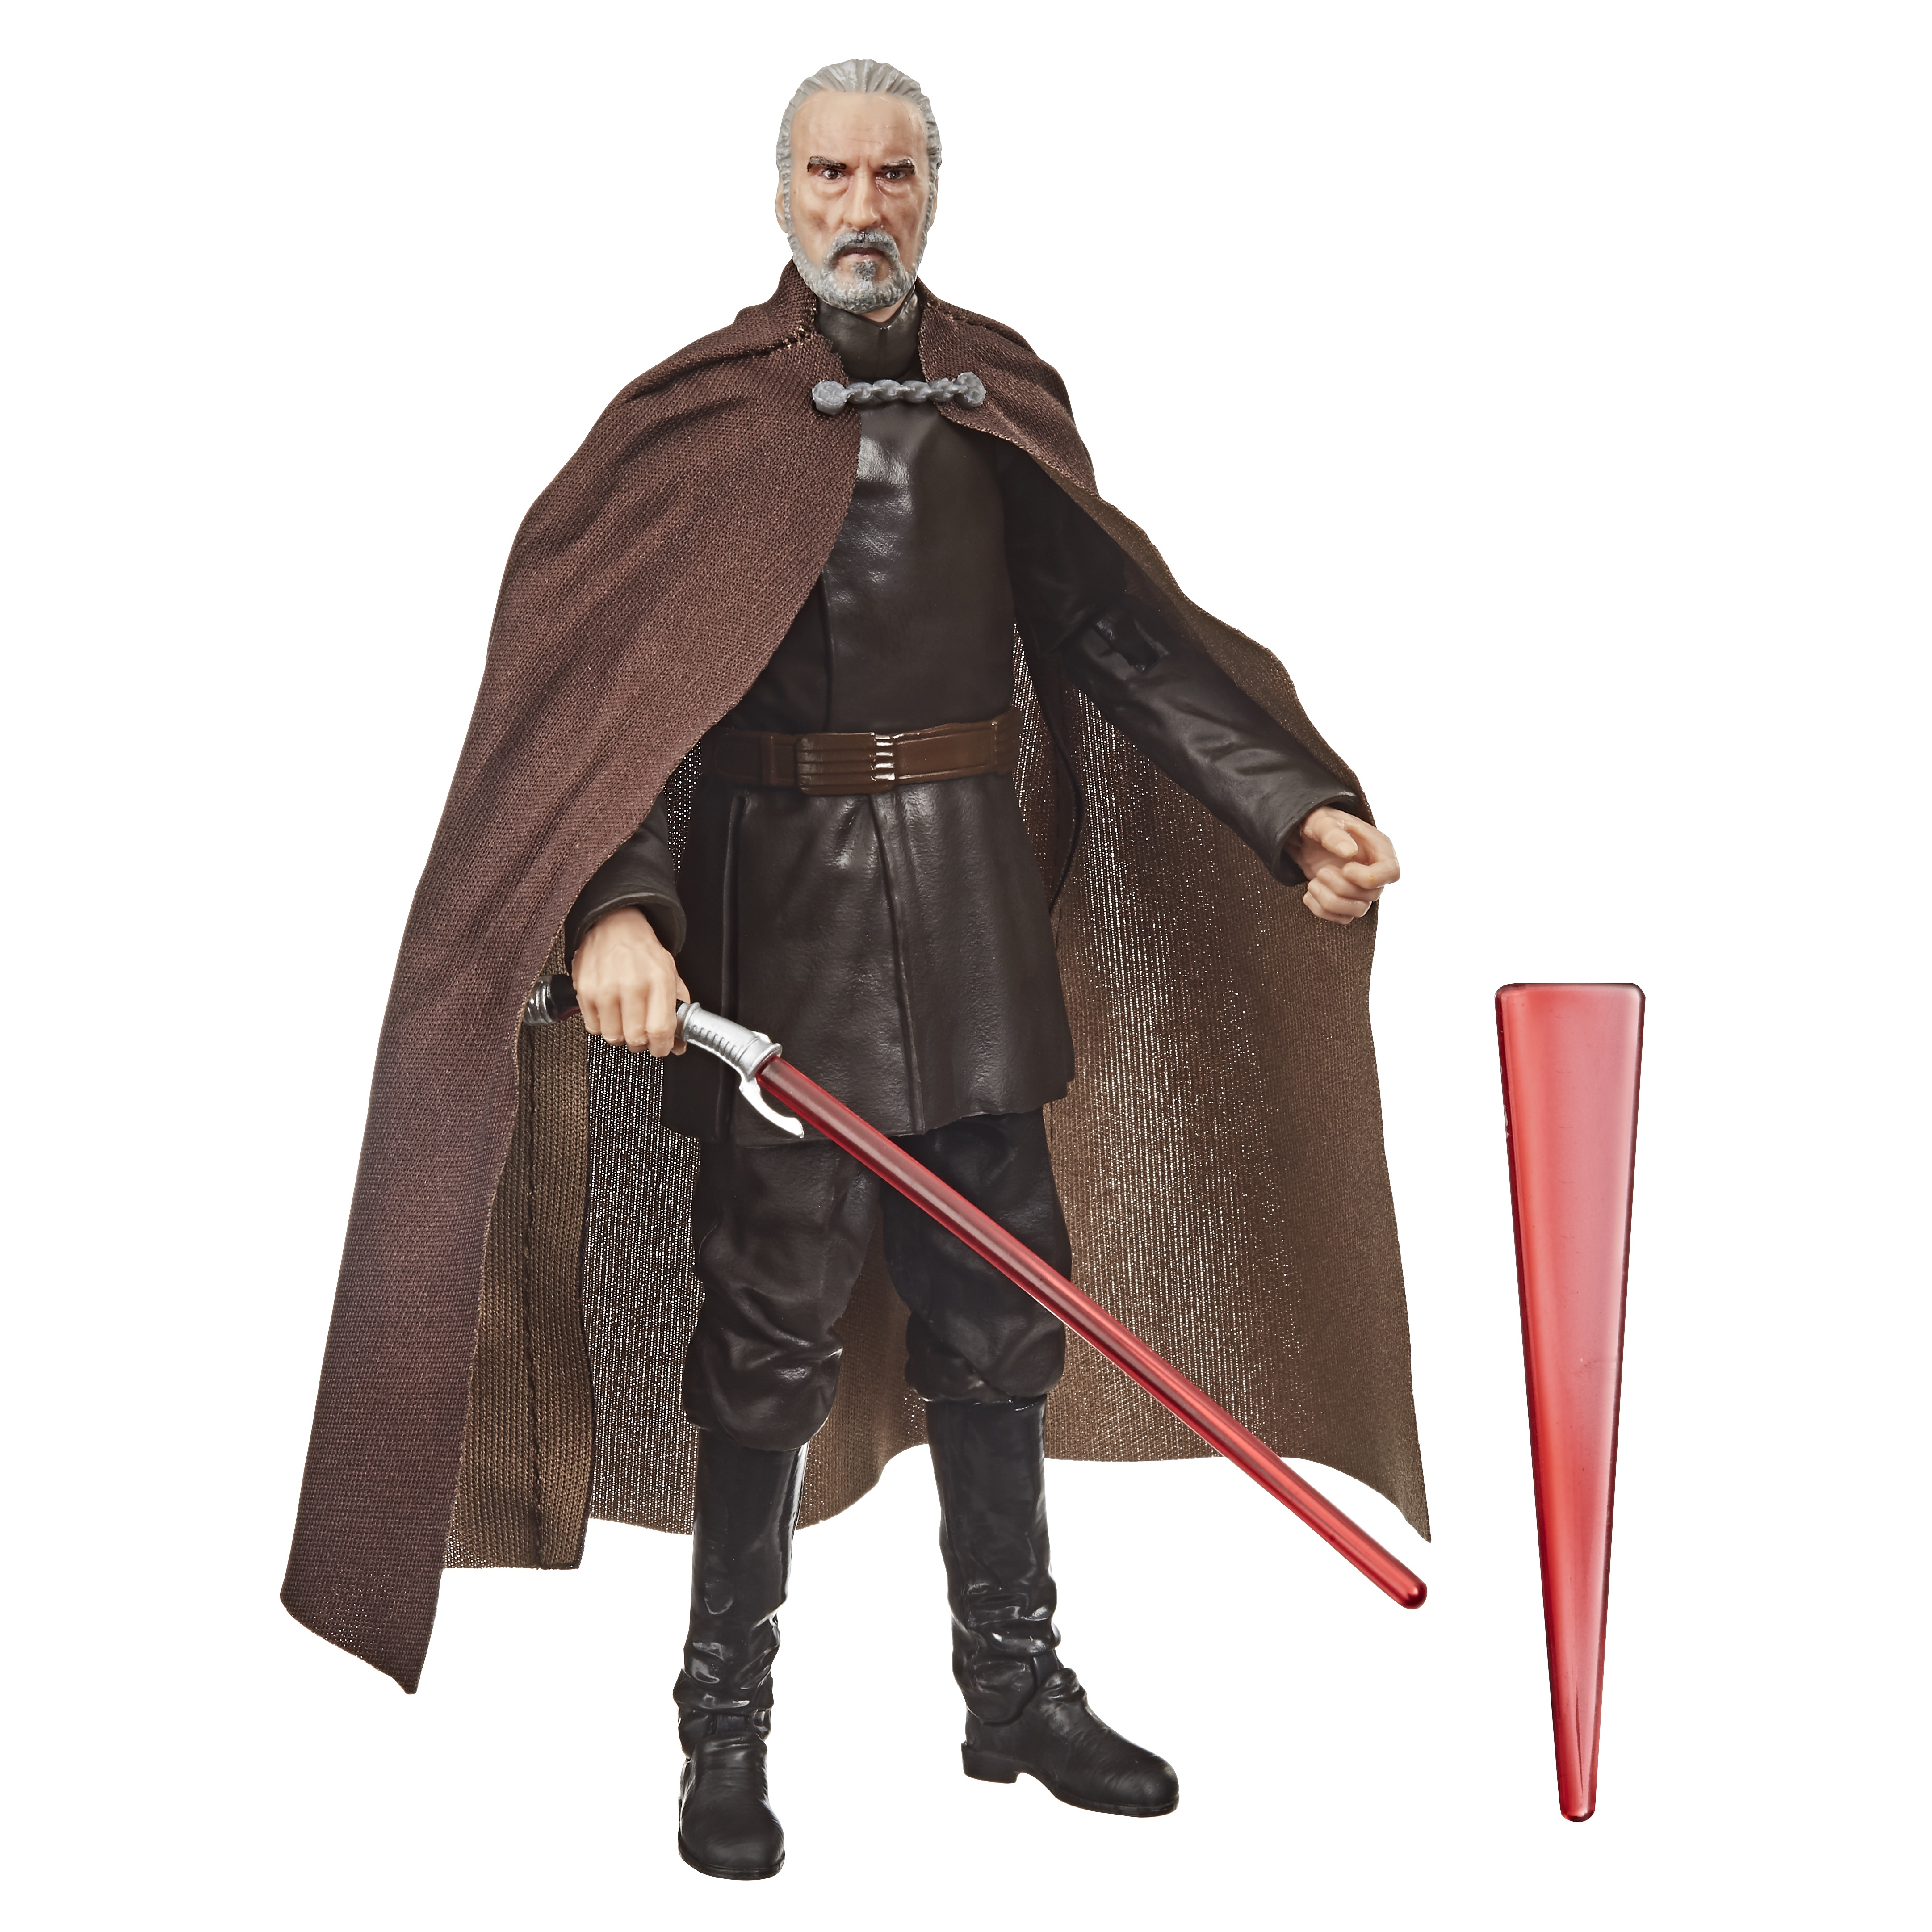 Star Wars The Black Series Count Dooku 15cm Actionfigur E8072 5010993654017